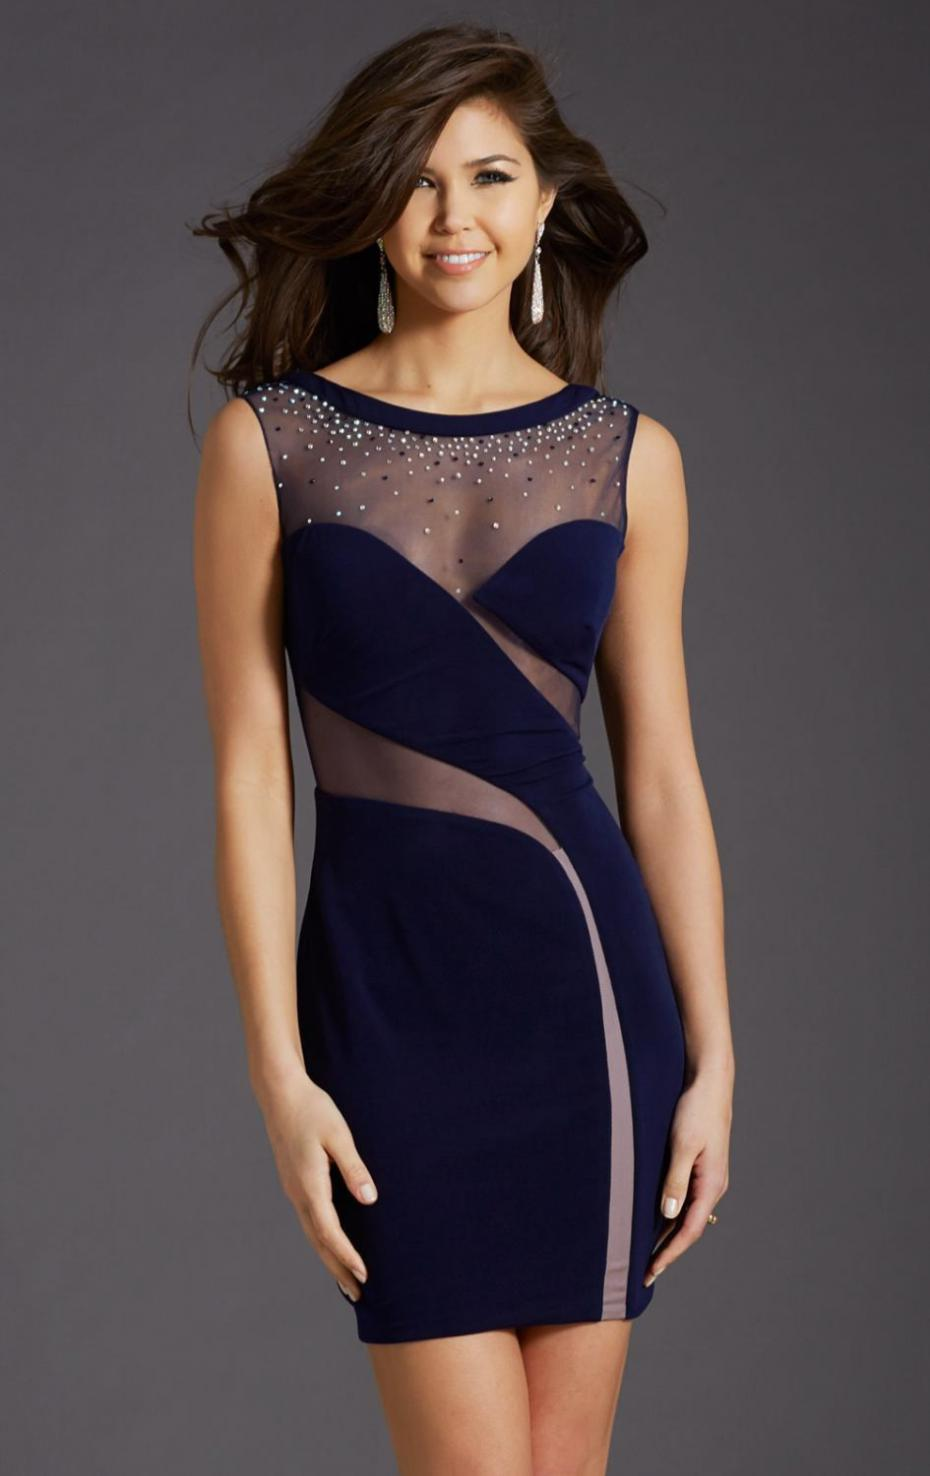 Tight Homecoming Dresses